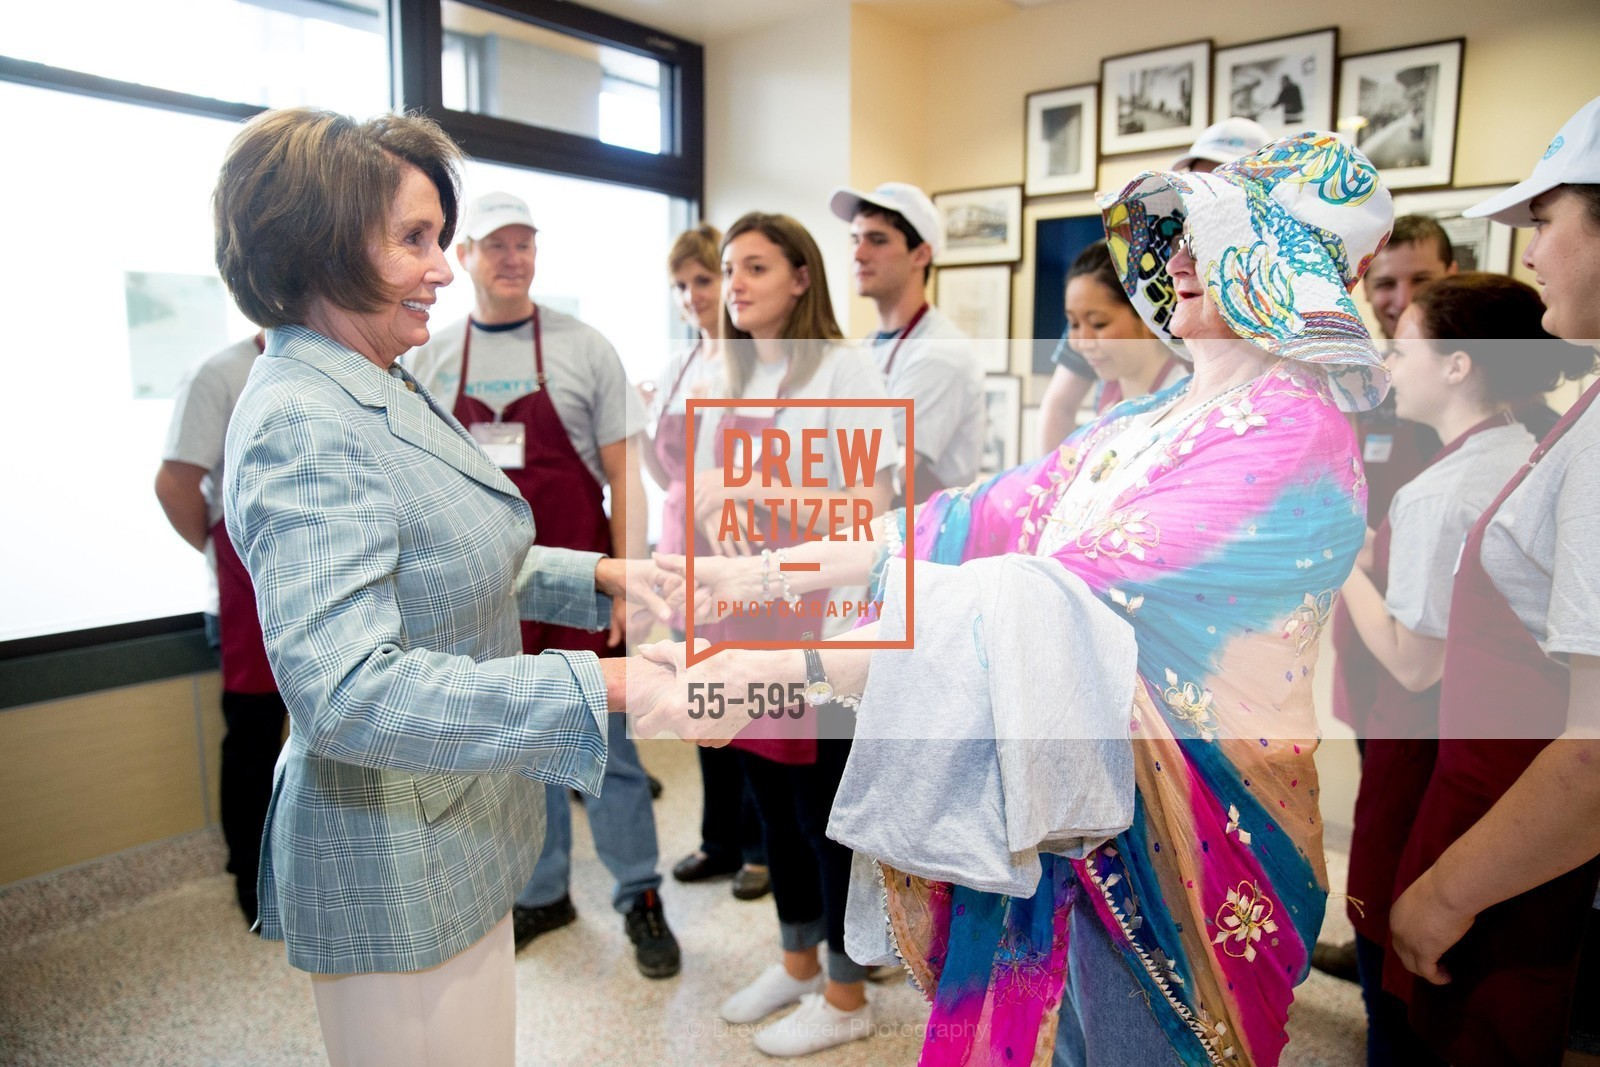 Nancy Pelosi, ST. ANTHONY'S Dining Room Ribbon Cutting Ceremony, US, October 5th, 2014,Drew Altizer, Drew Altizer Photography, full-service event agency, private events, San Francisco photographer, photographer California